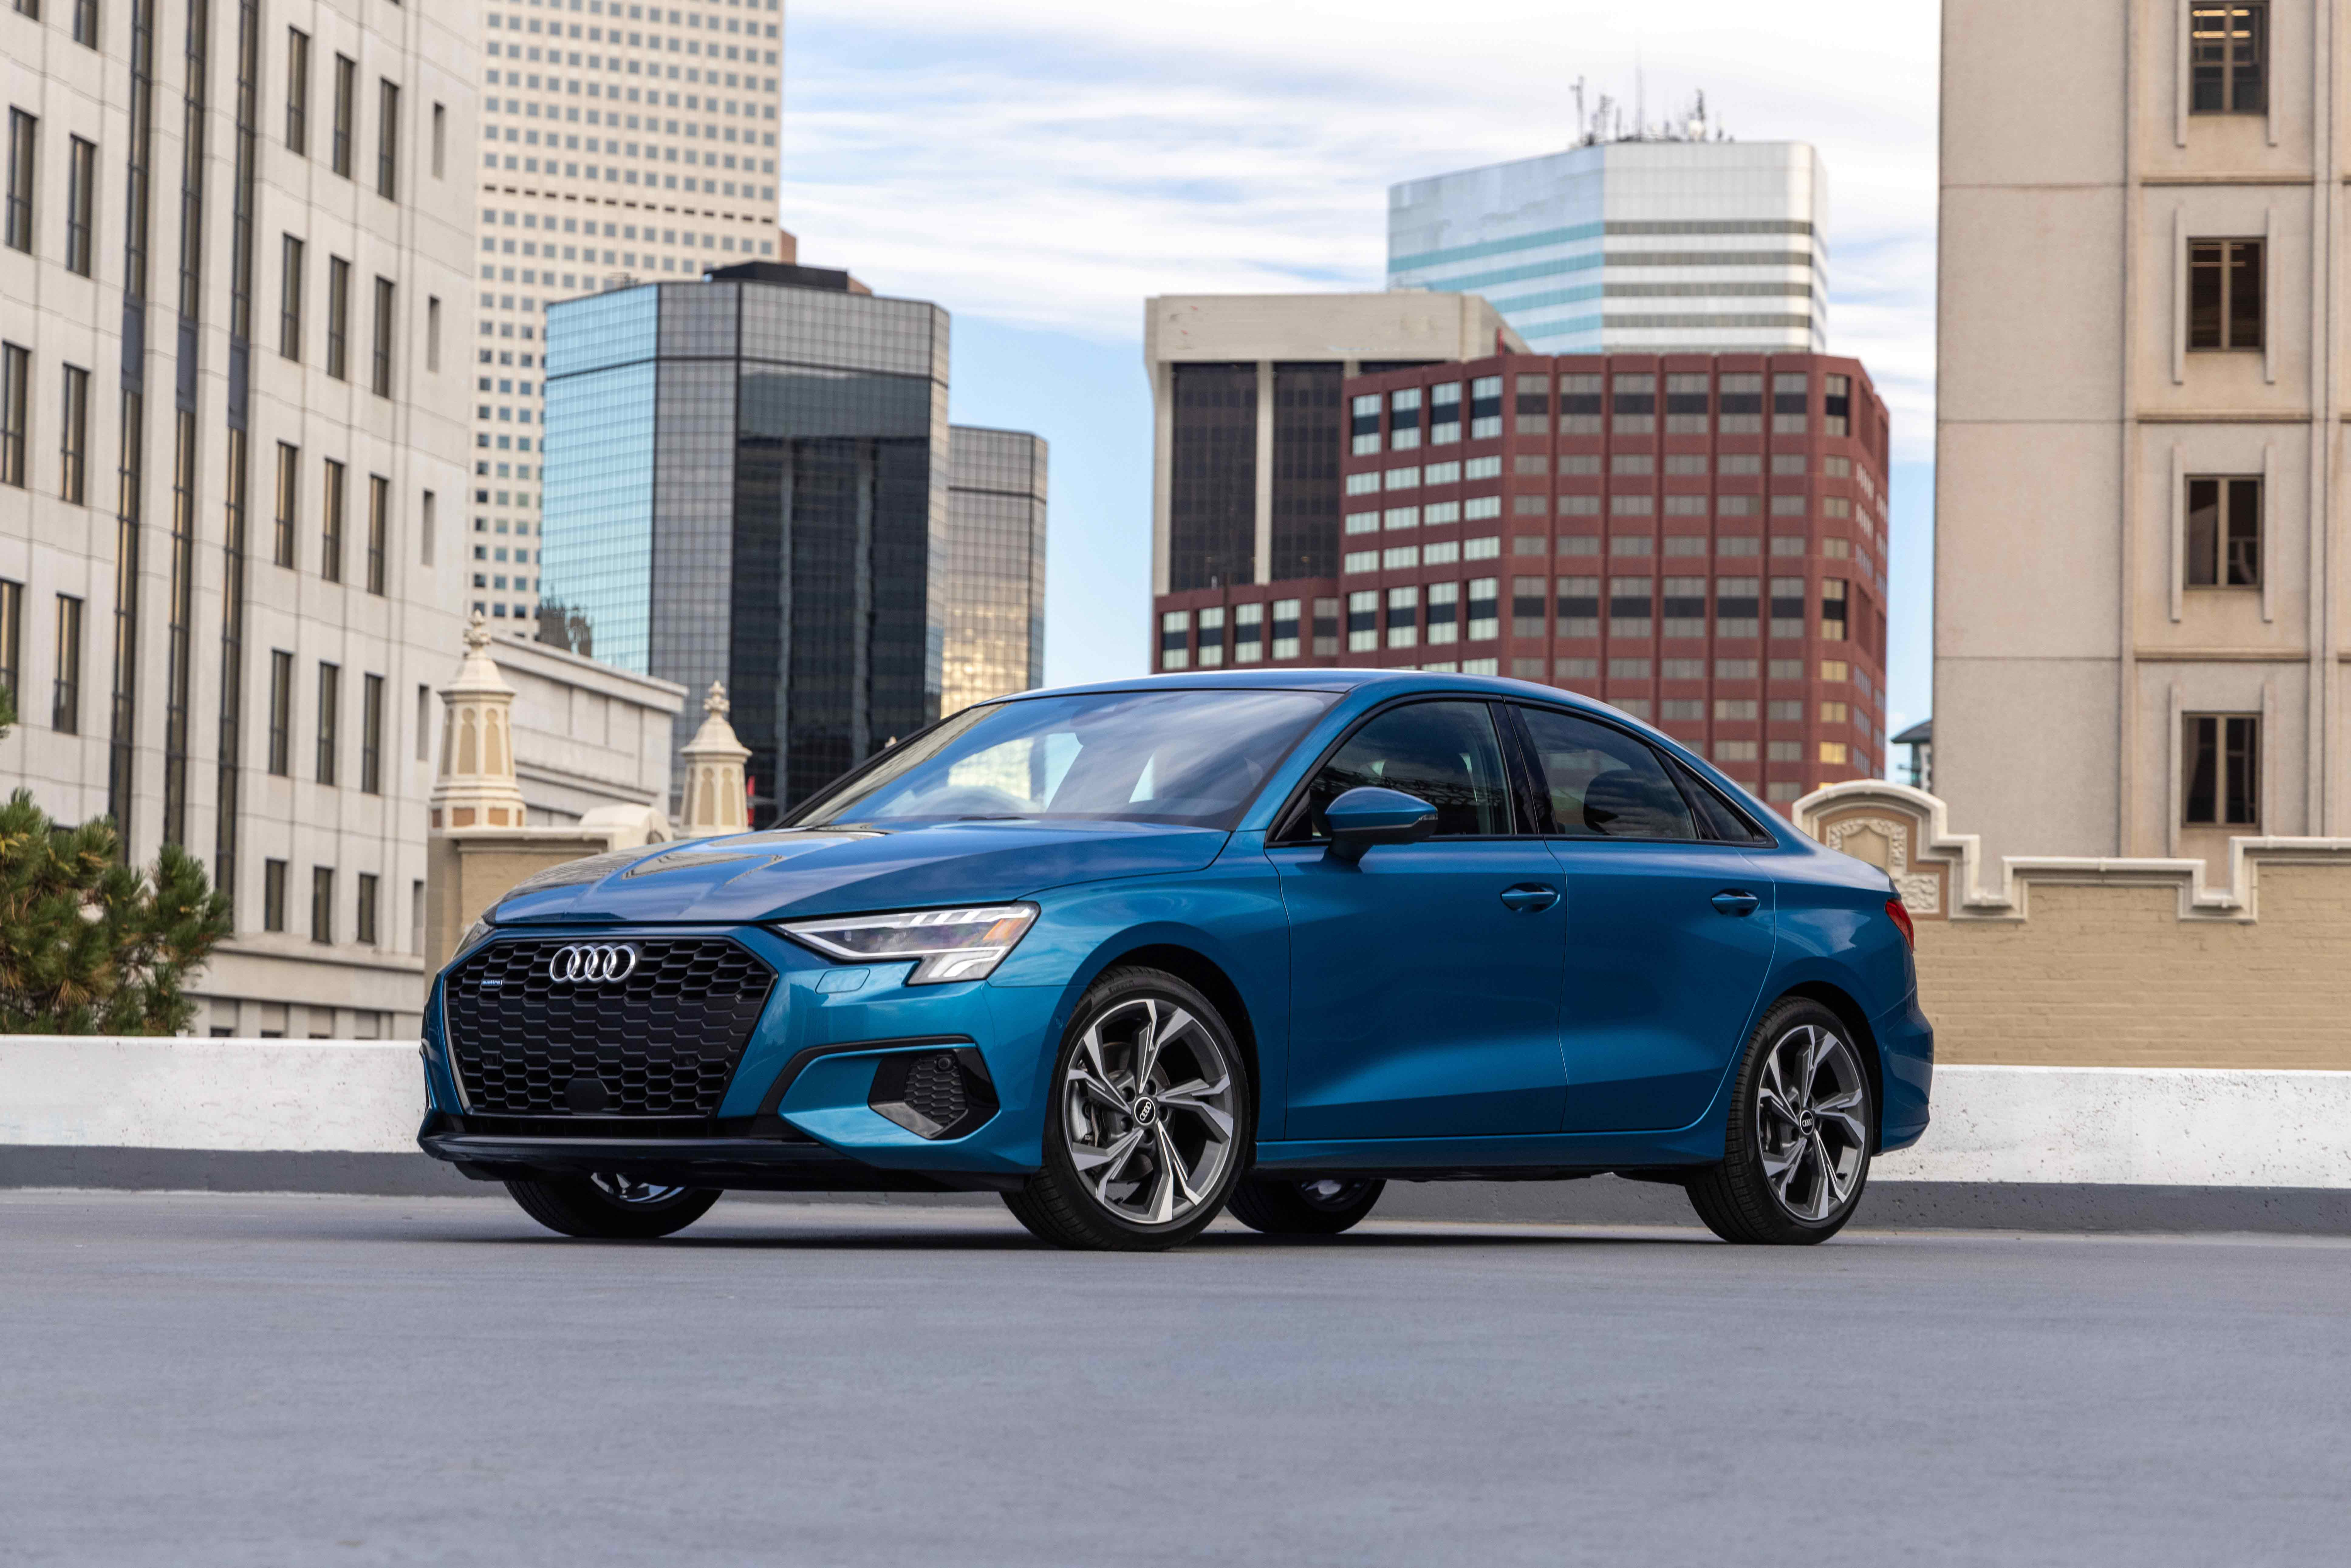 2022 Audi A3 now on sale, marking more than 15 years of excellence and innovation in US market